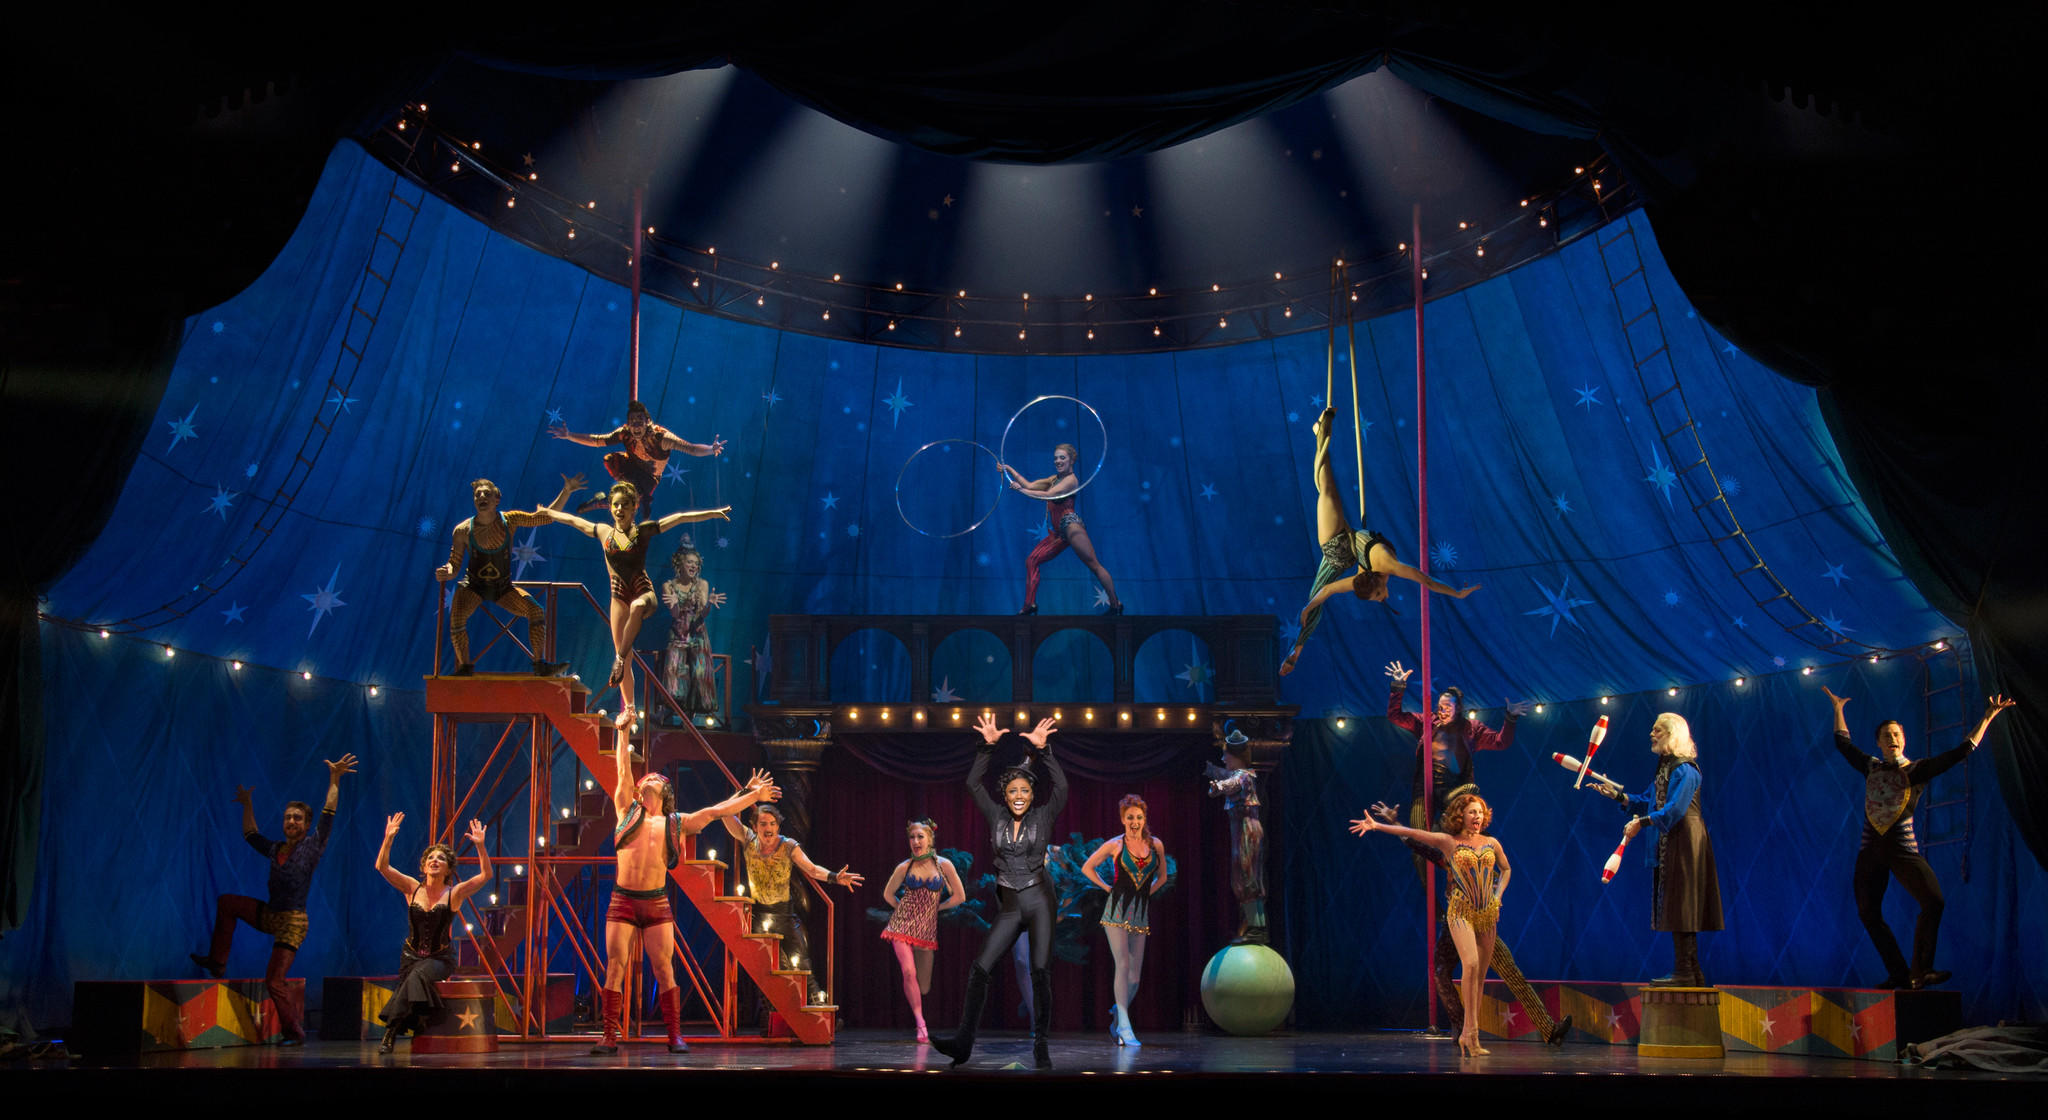 The new year will start with Diane Paulus celebrated circus-themed revival of Pippin, which won the Tony Award for best revival last year and is still playing on Broadway. The show runs Jan. 6 to 11.""